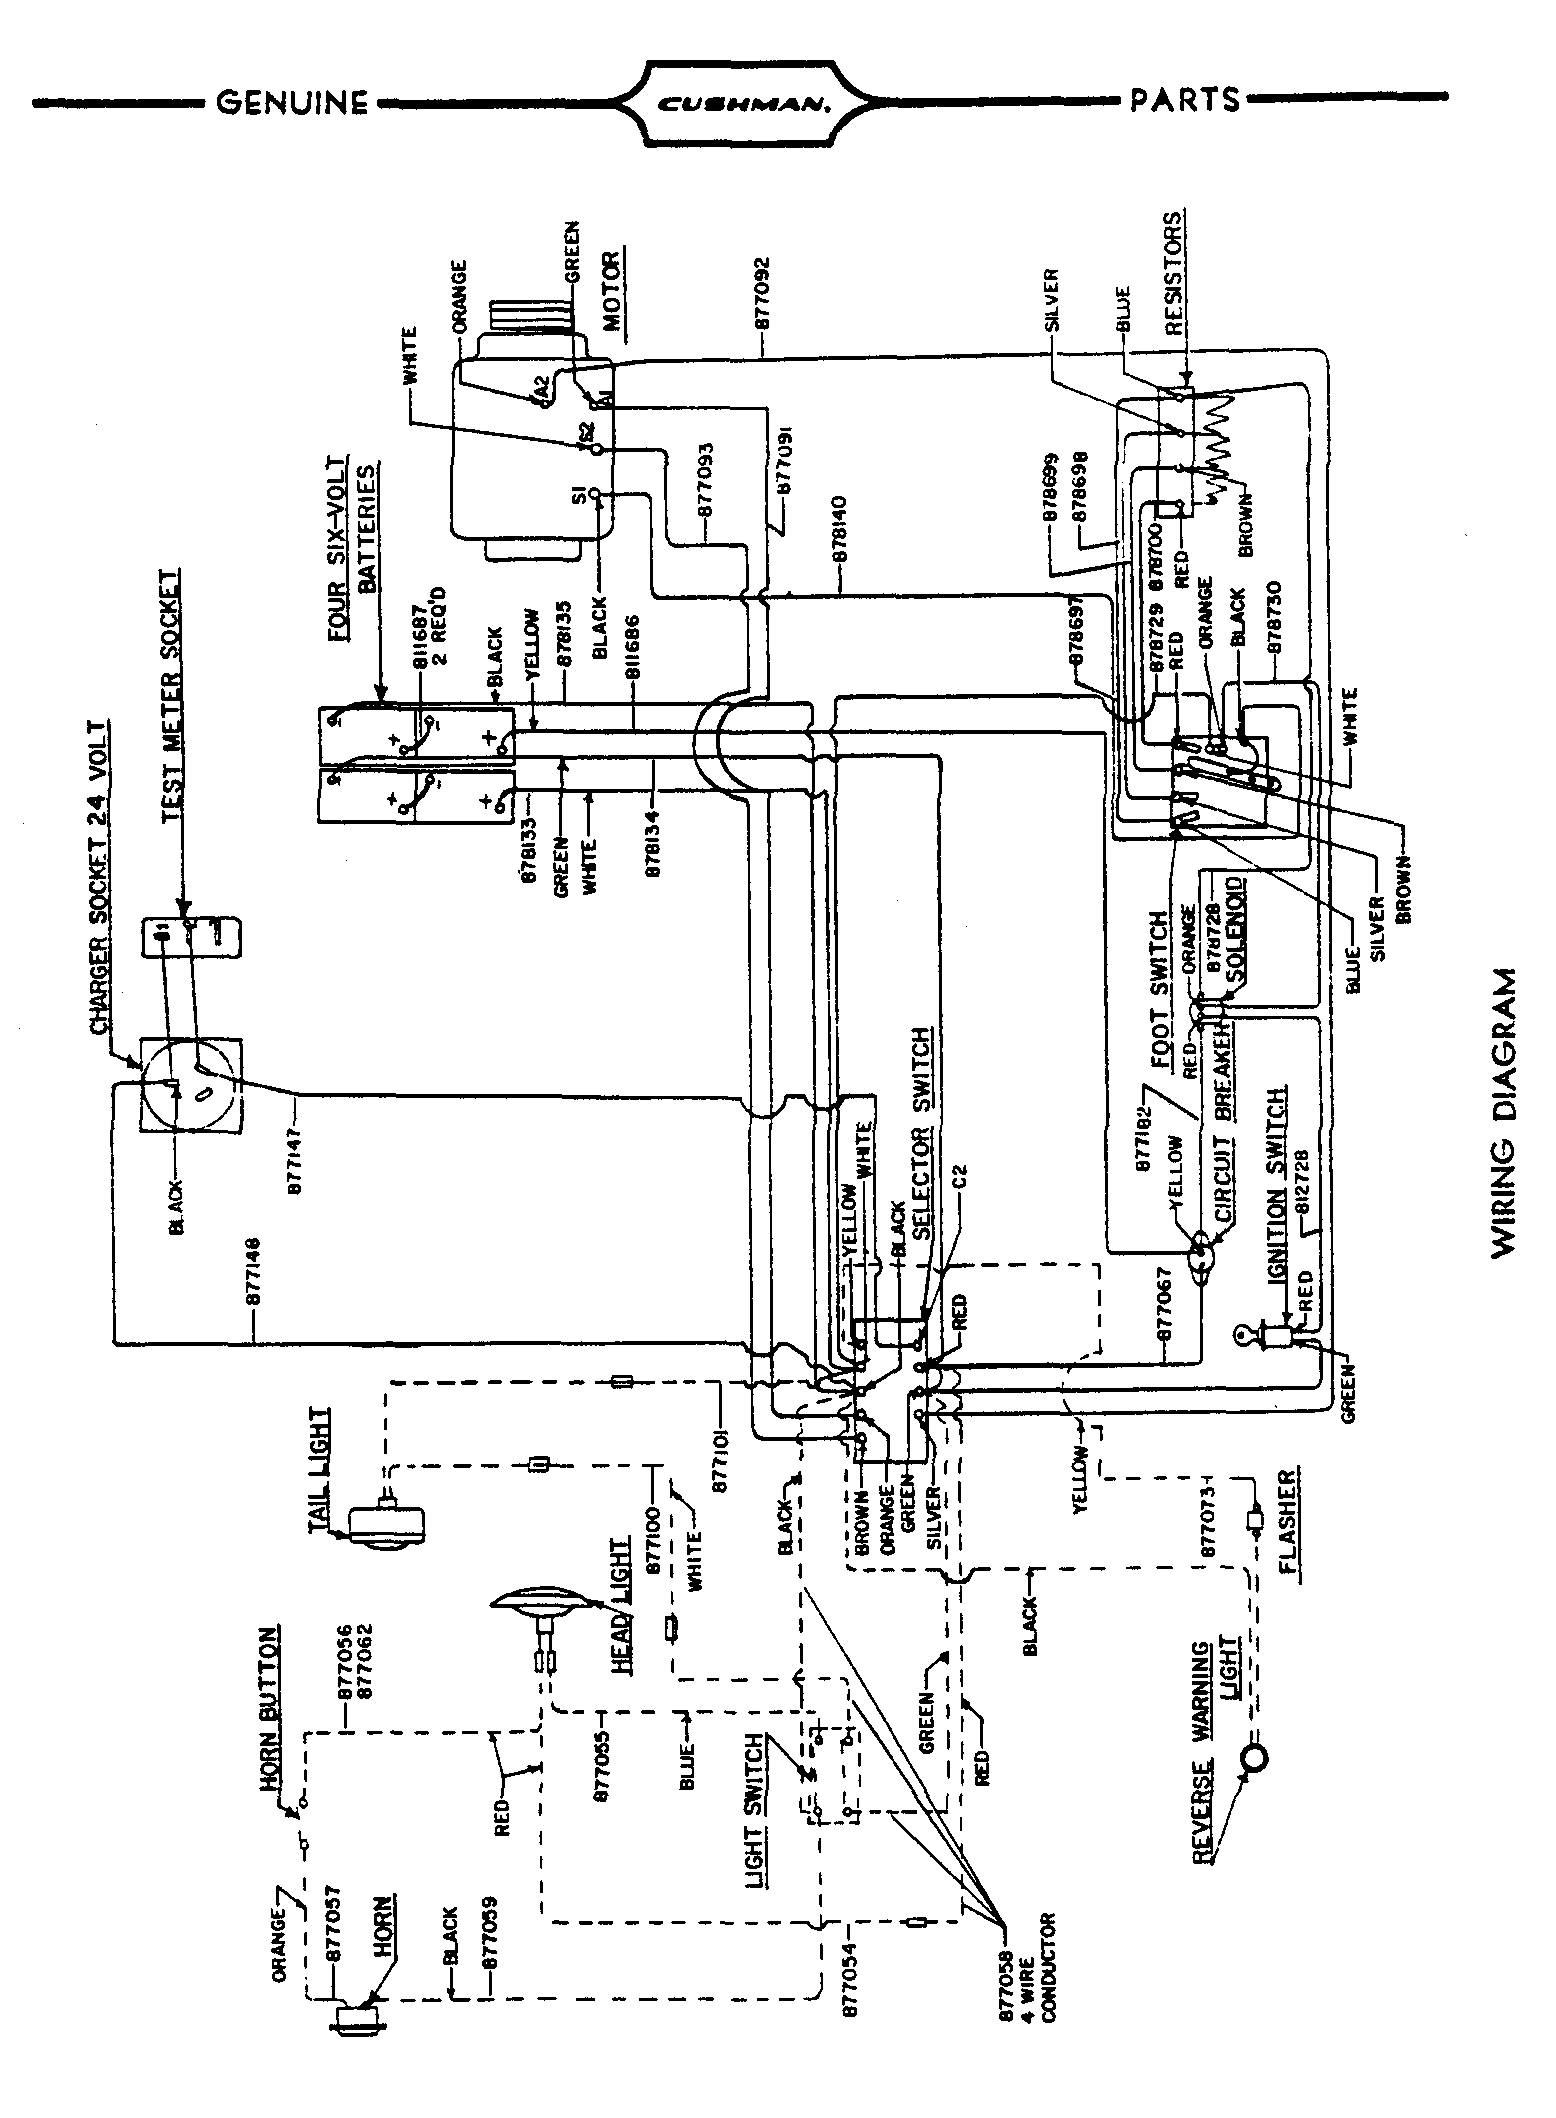 Wiring Diagram For Cushman Golf Cart